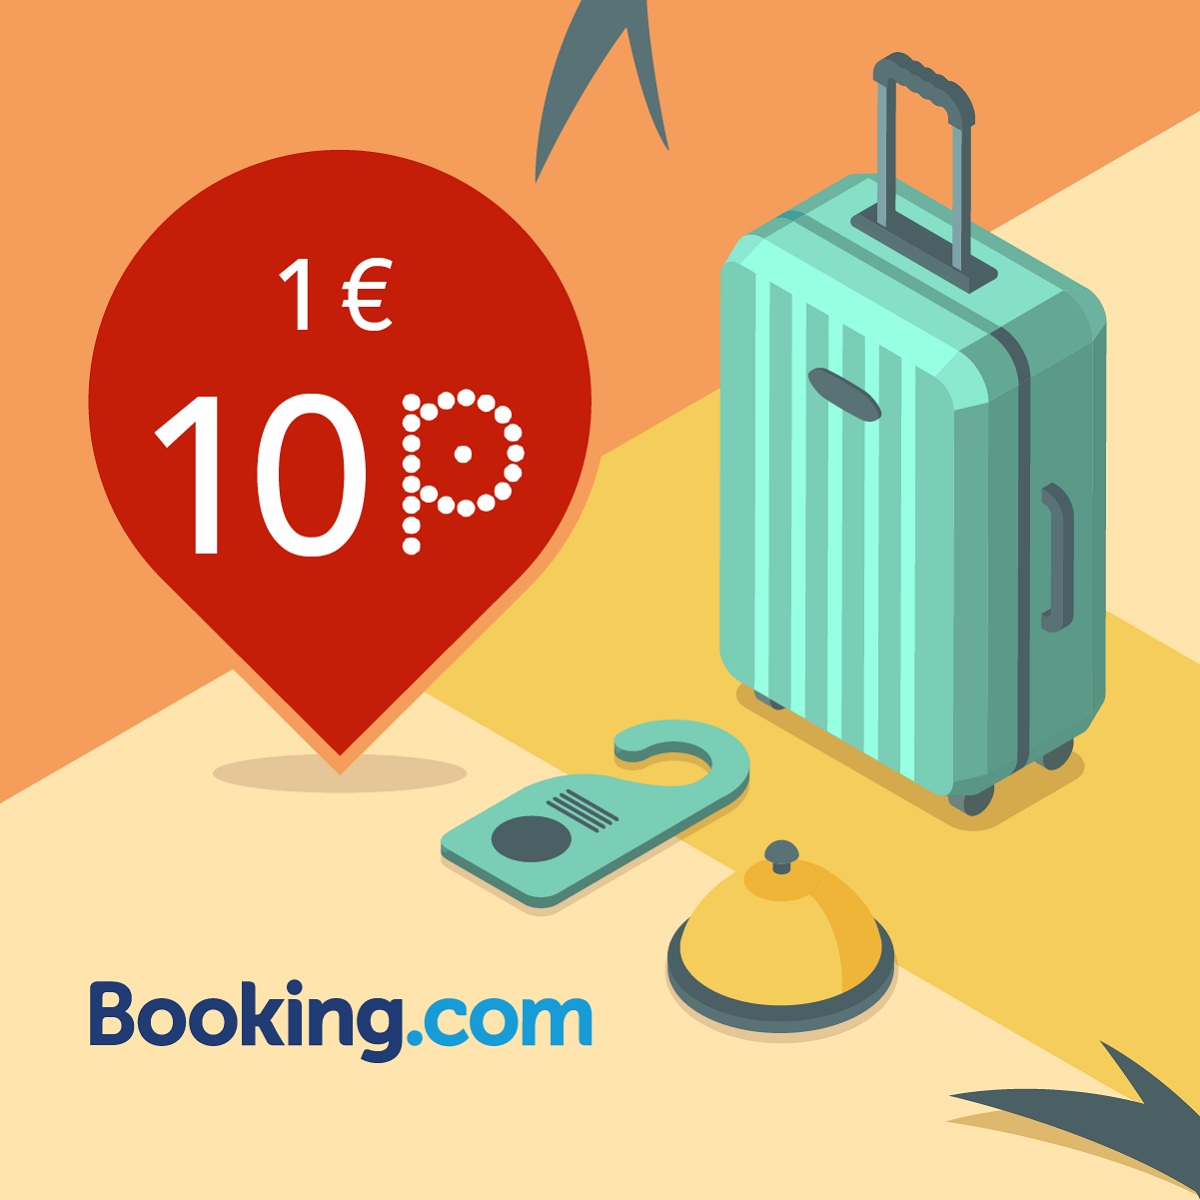 Get a BIG bonus!